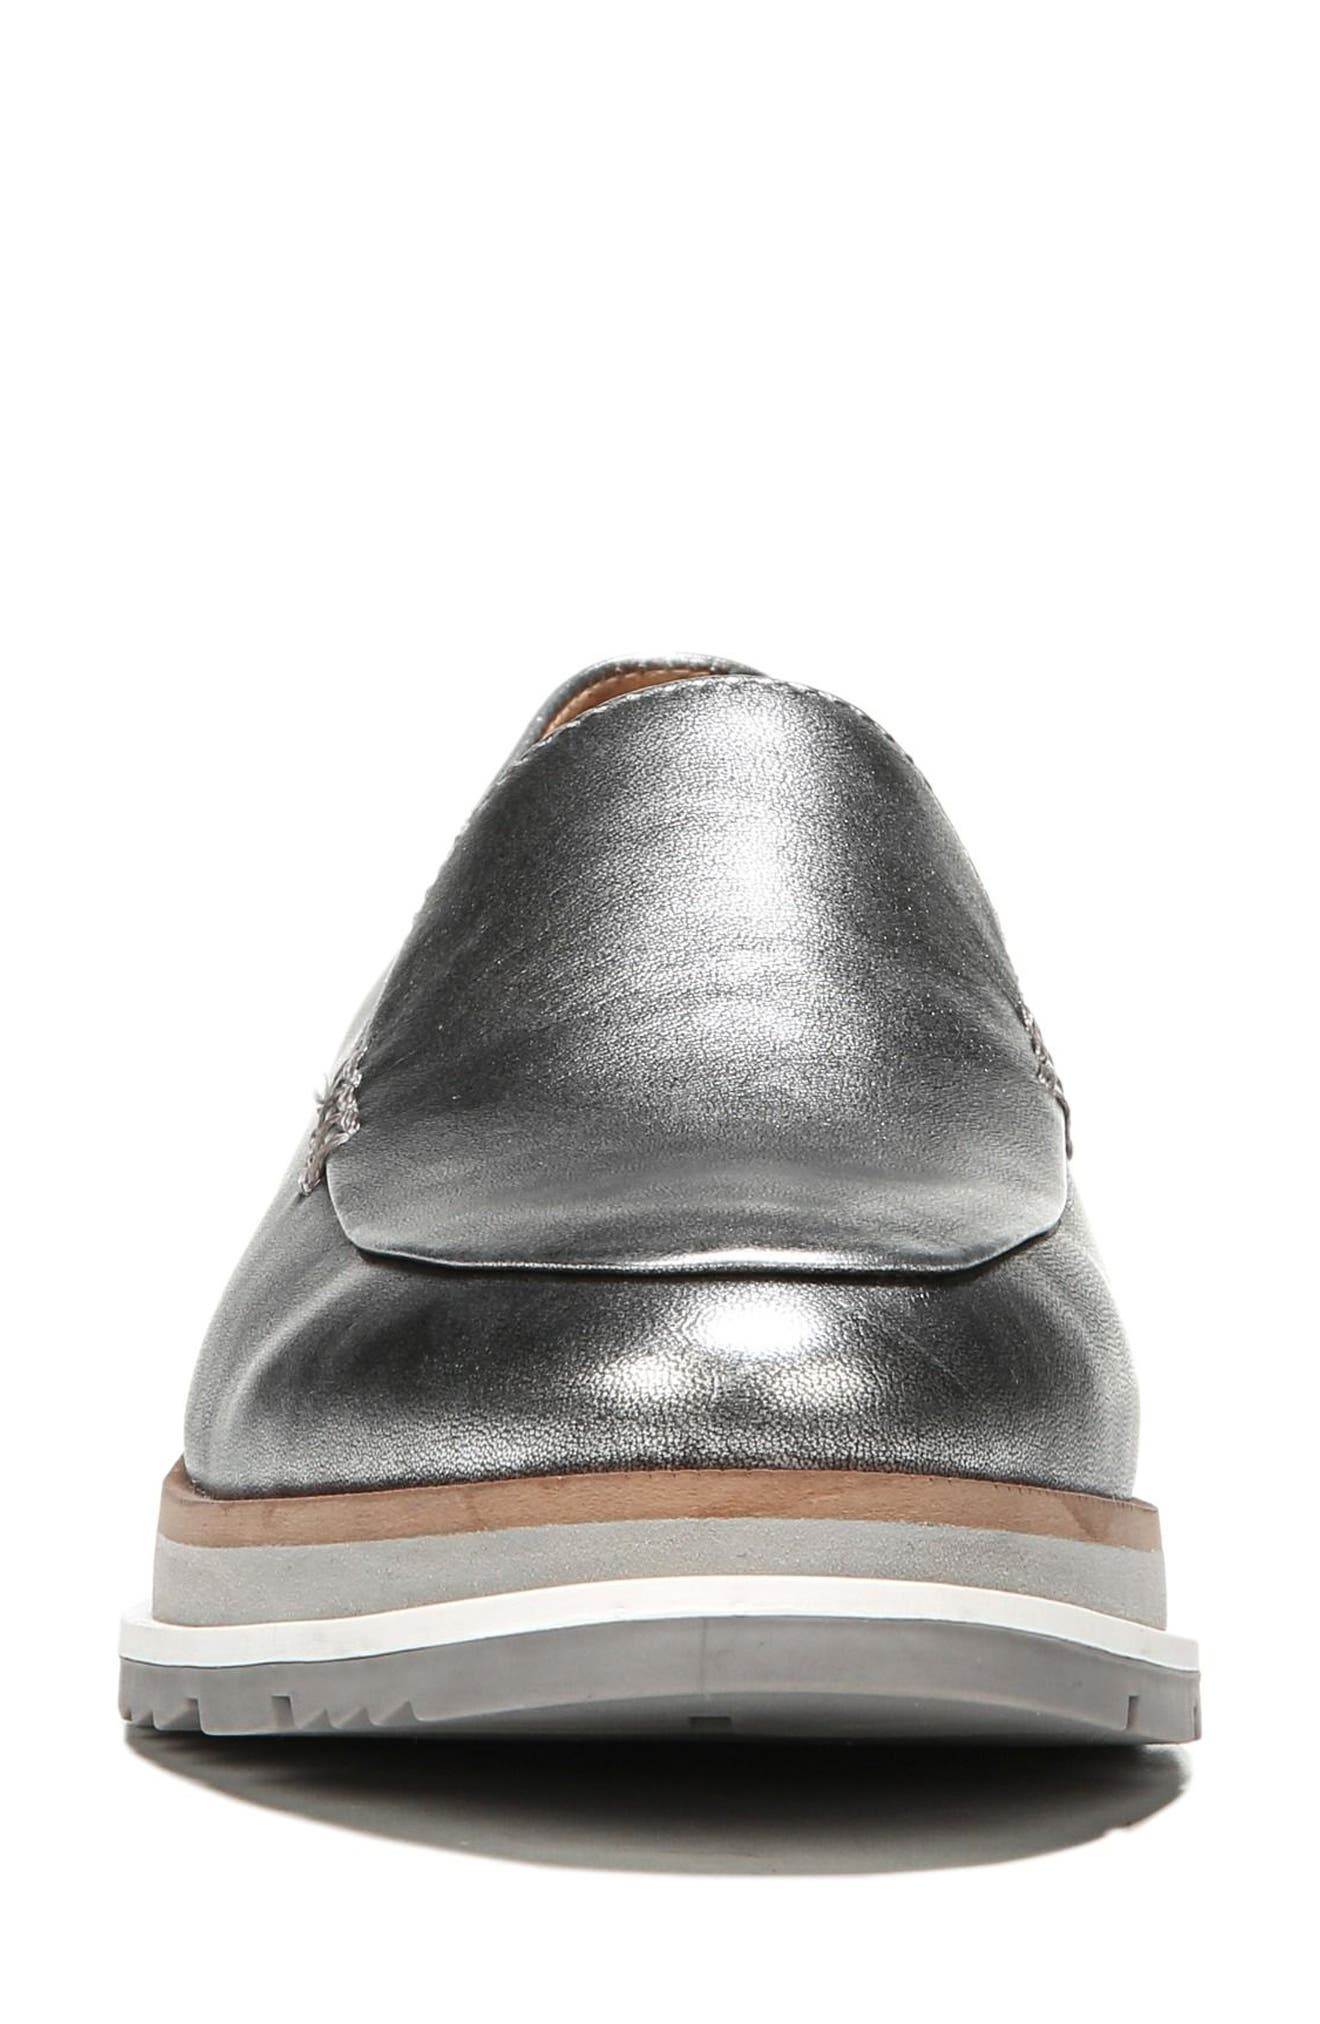 Ayers Loafer Flat,                             Alternate thumbnail 38, color,